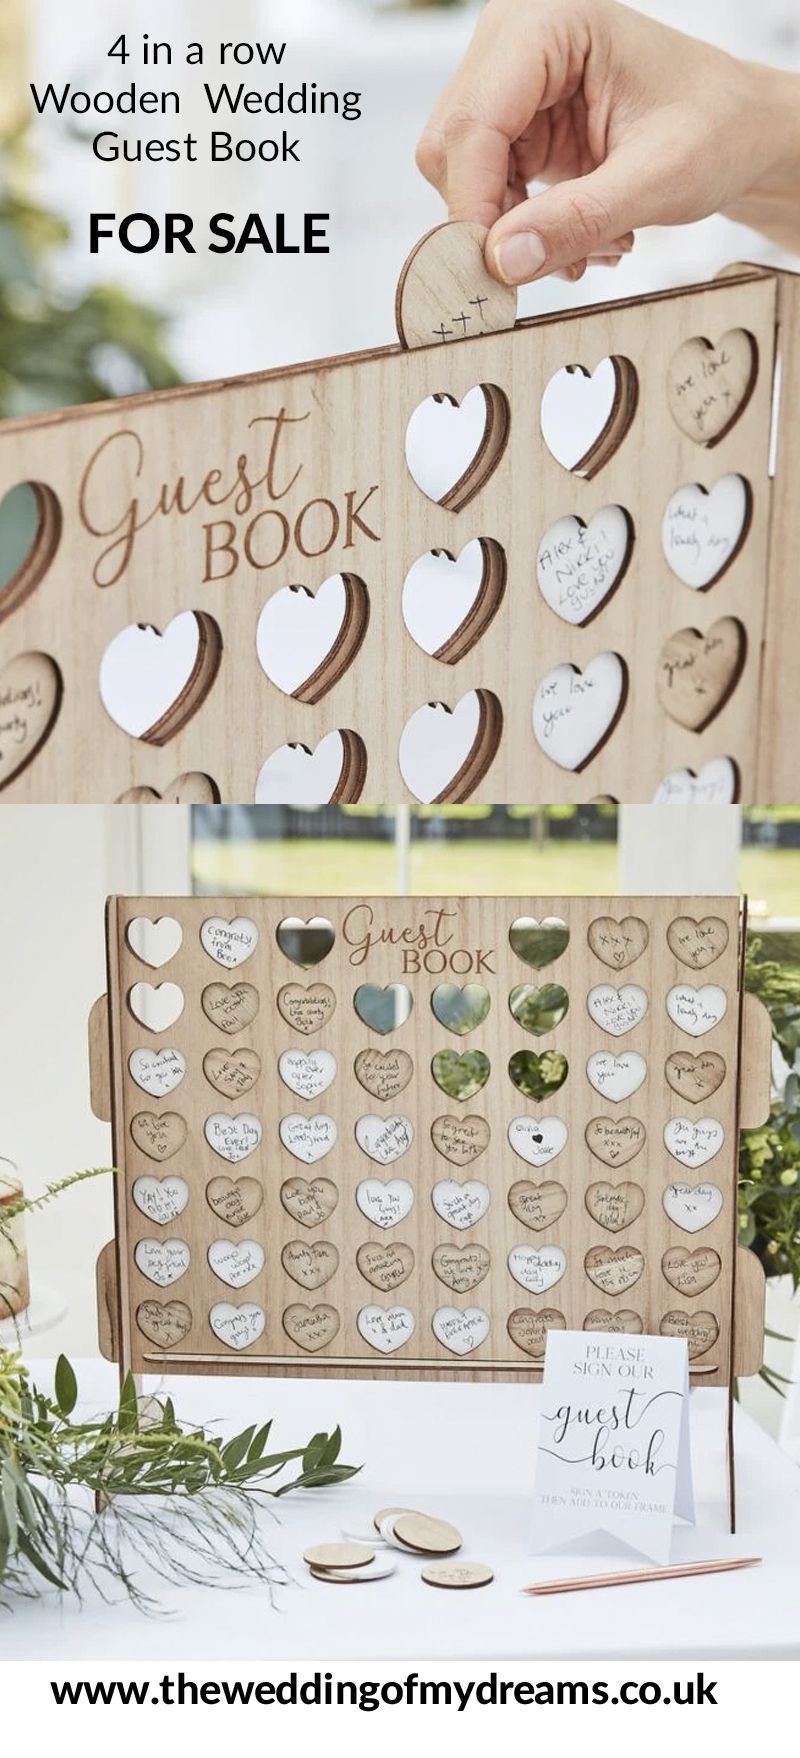 Wedding Guest Book Wooden 4 In A Row in 2020 Wedding